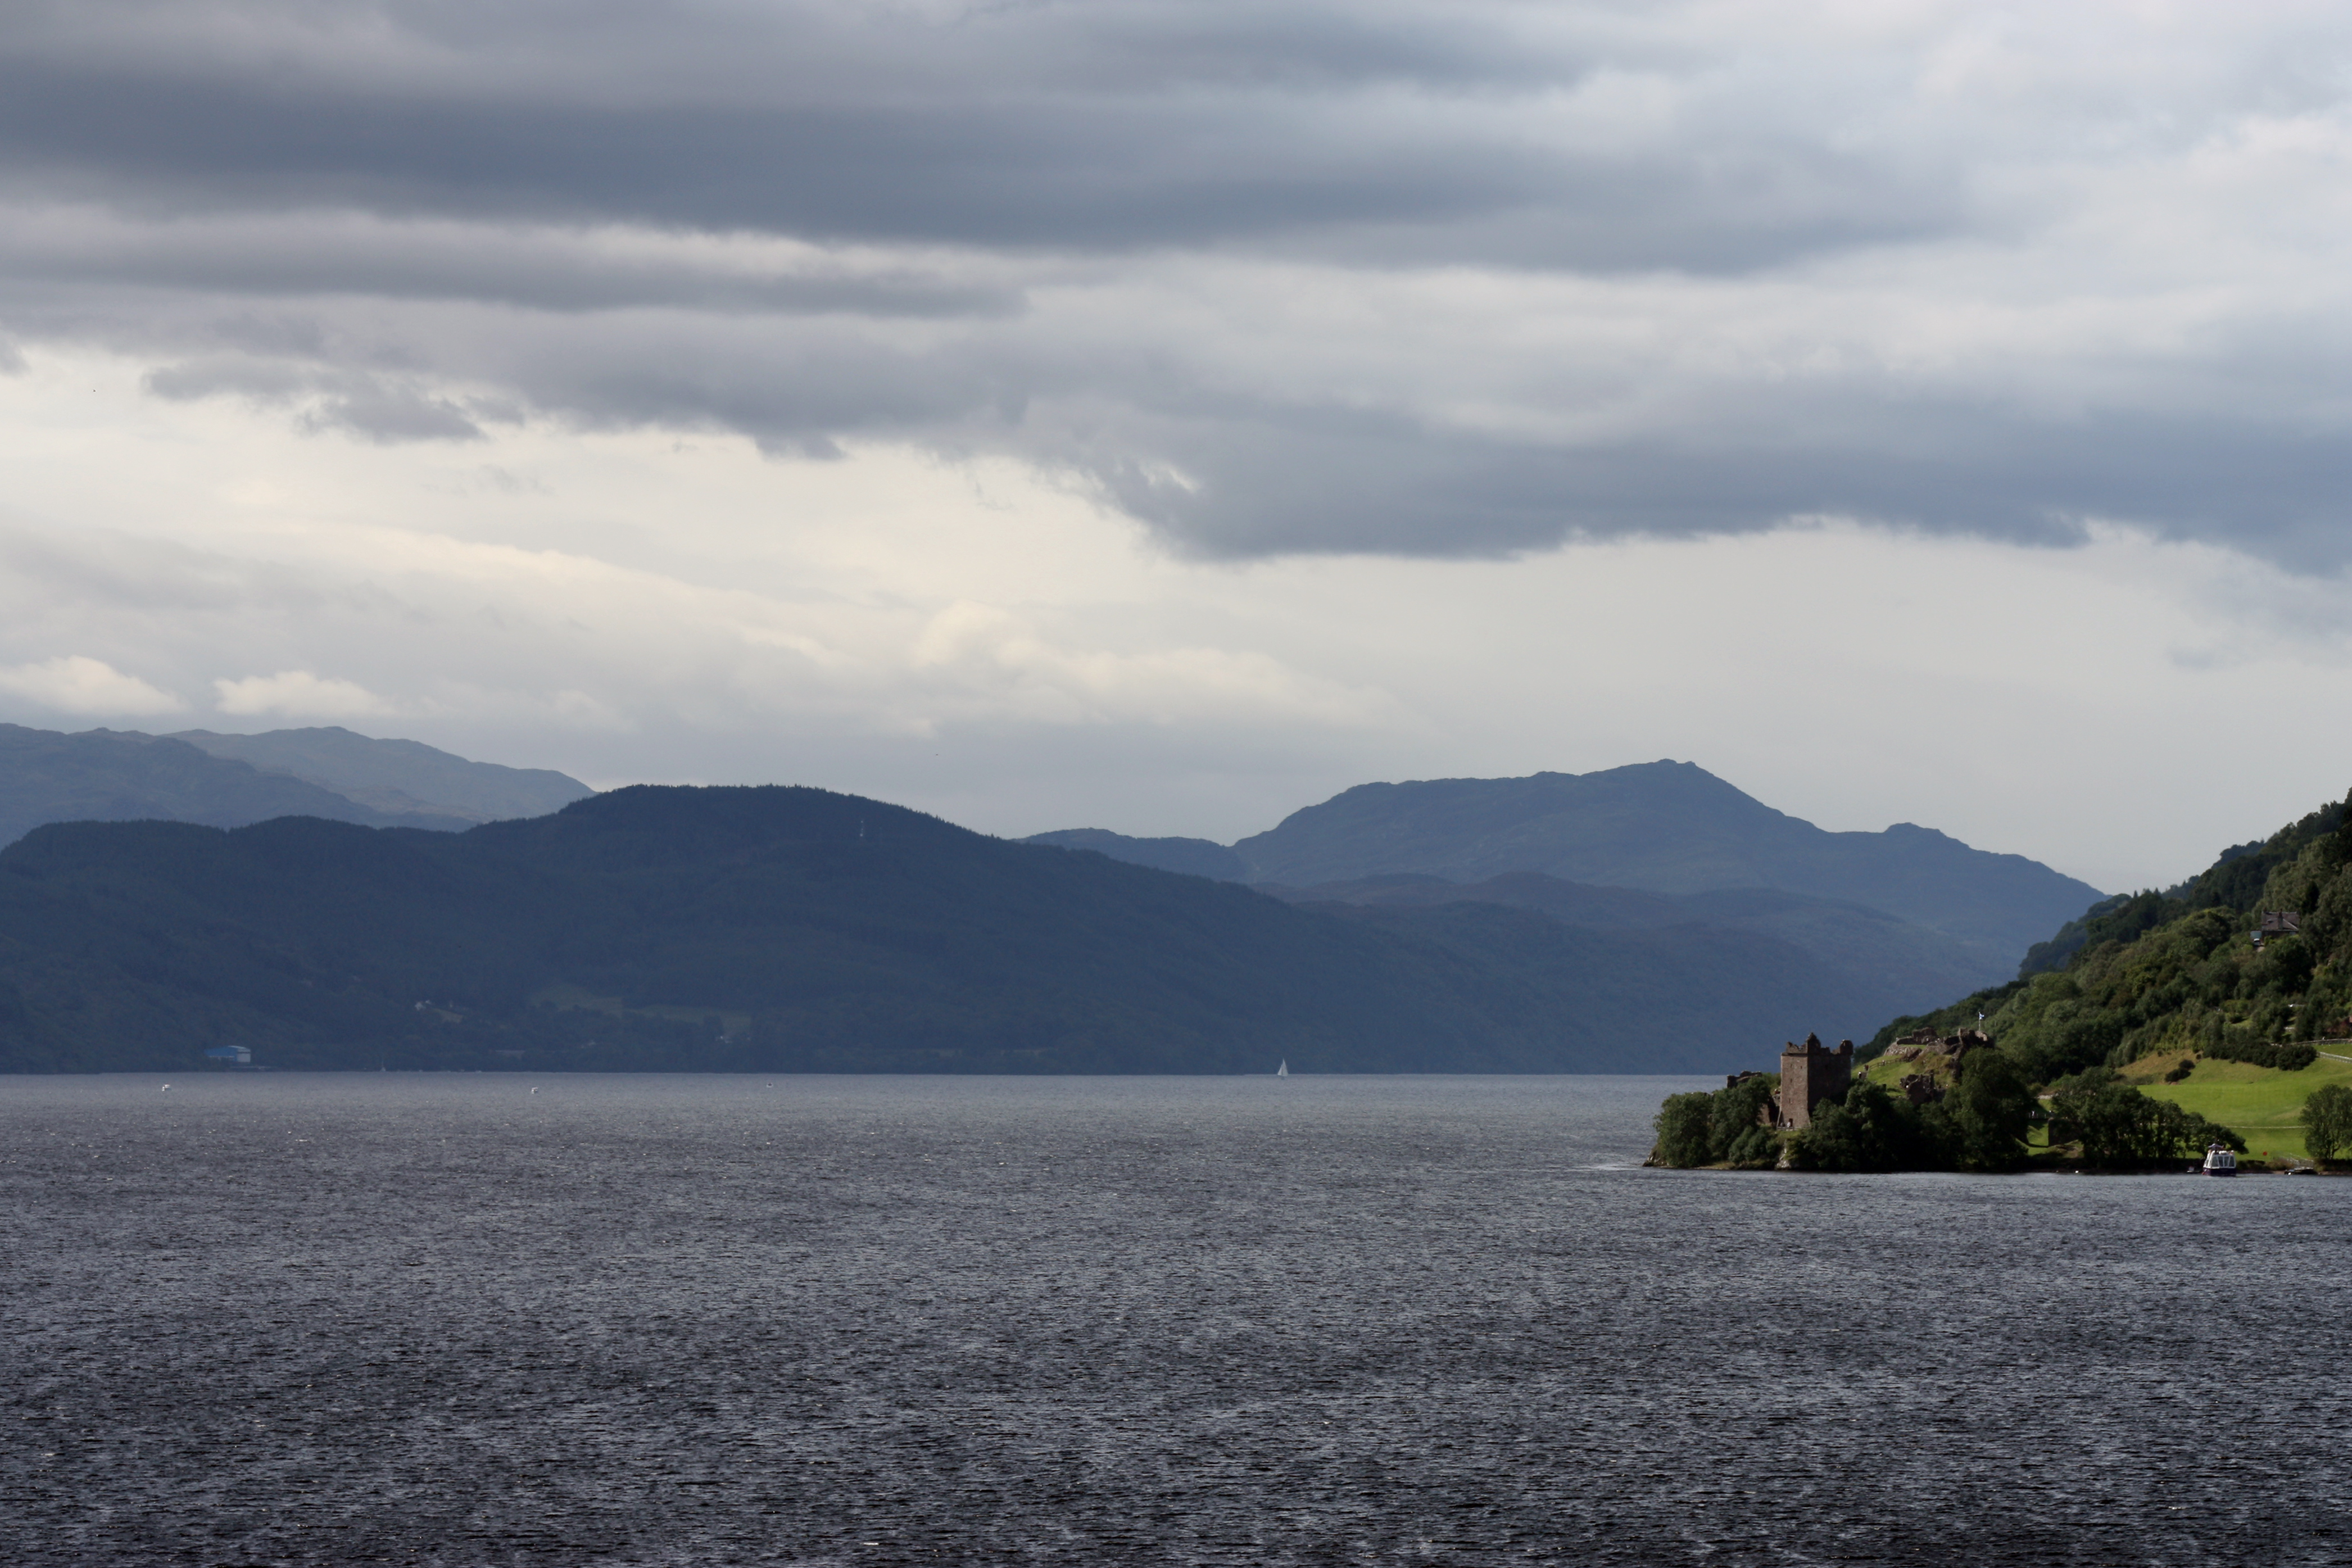 https://upload.wikimedia.org/wikipedia/commons/2/21/The_Loch_Ness_and_Urquhart_castle.jpg